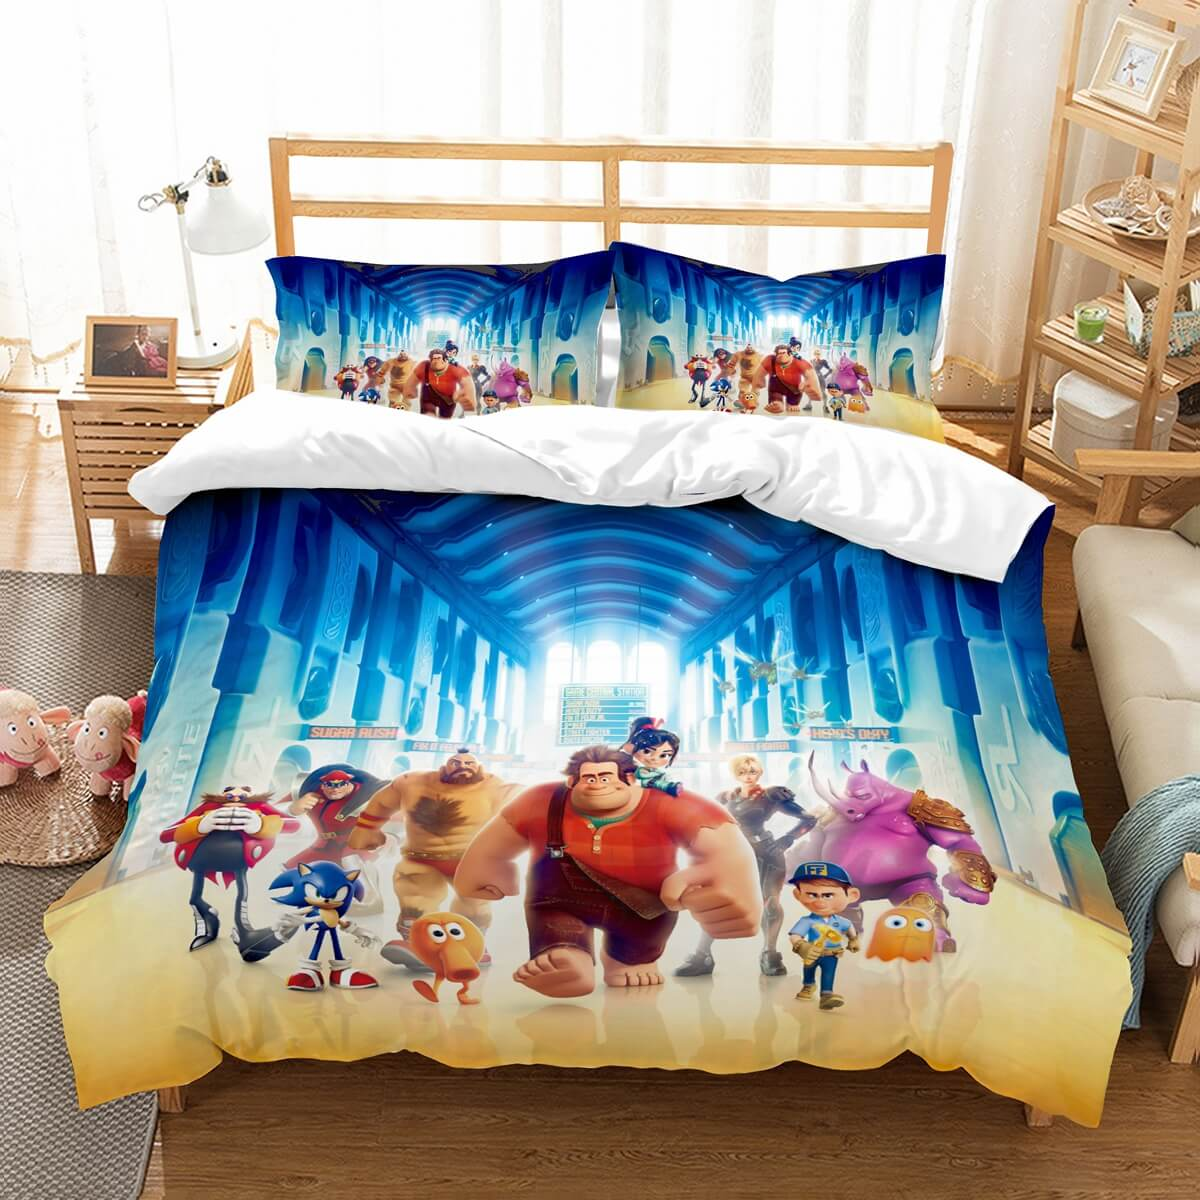 3D Customize Wreck It Ralph Bedding Set Duvet Cover Set Bedroom Set Bedlinen